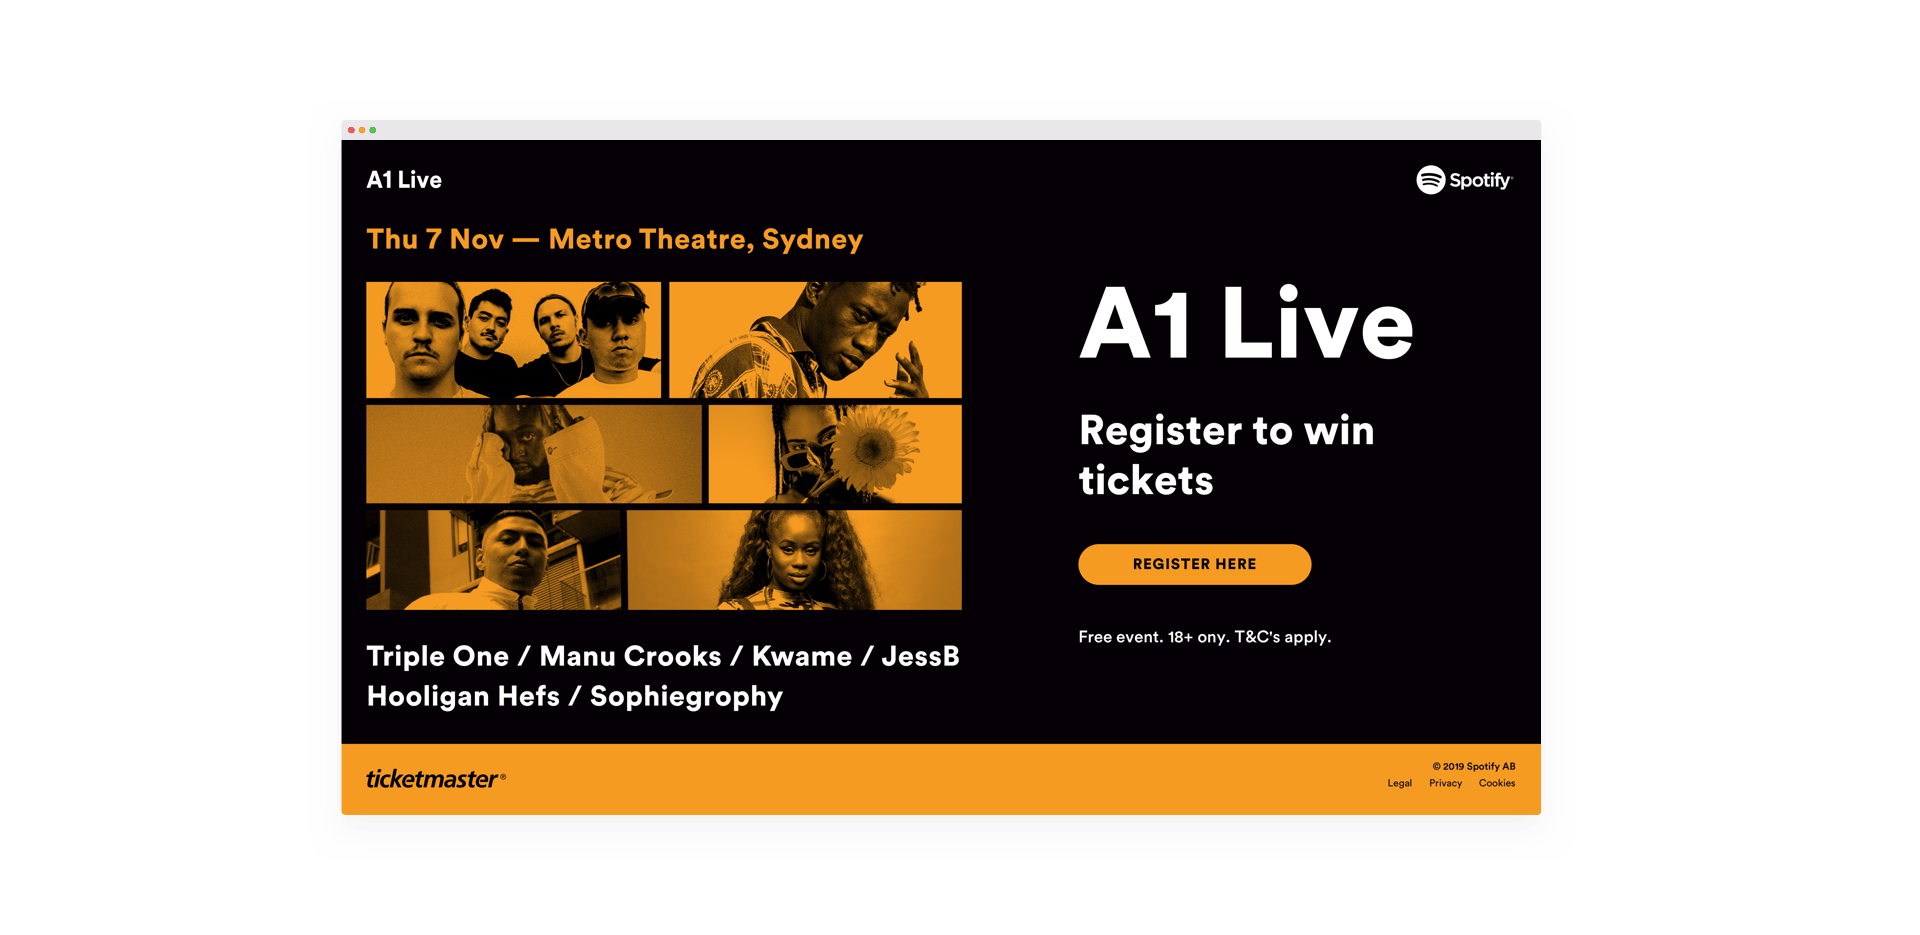 Screenshot of the A1 Live landing page